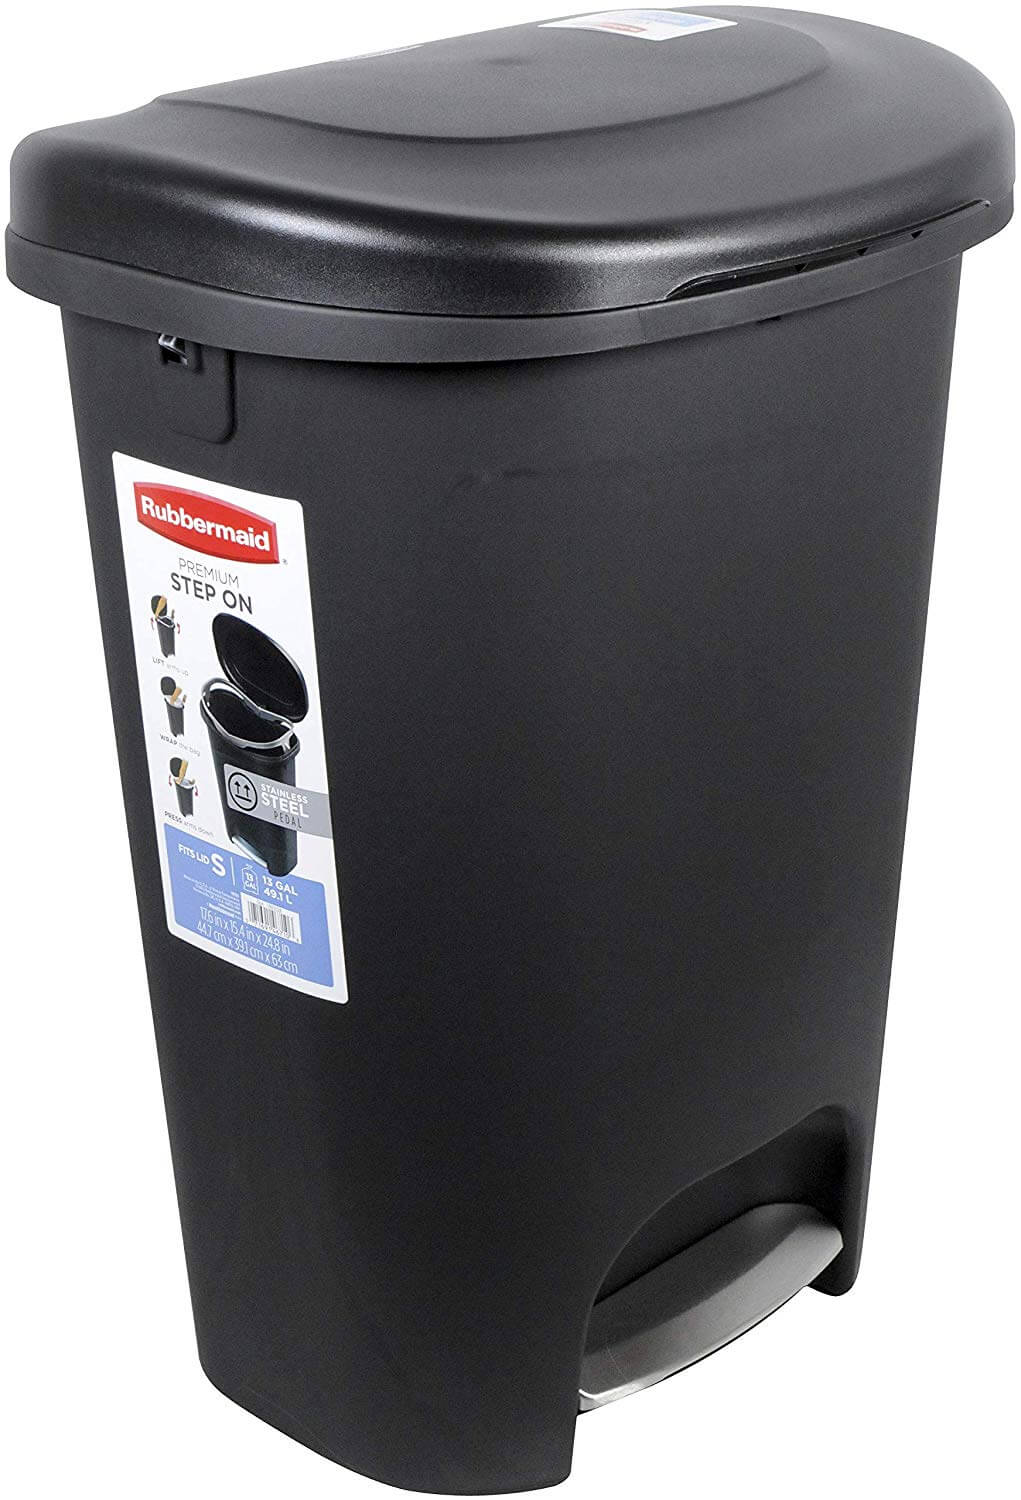 Rubbermaid Step On 13 Gallon Trash Can